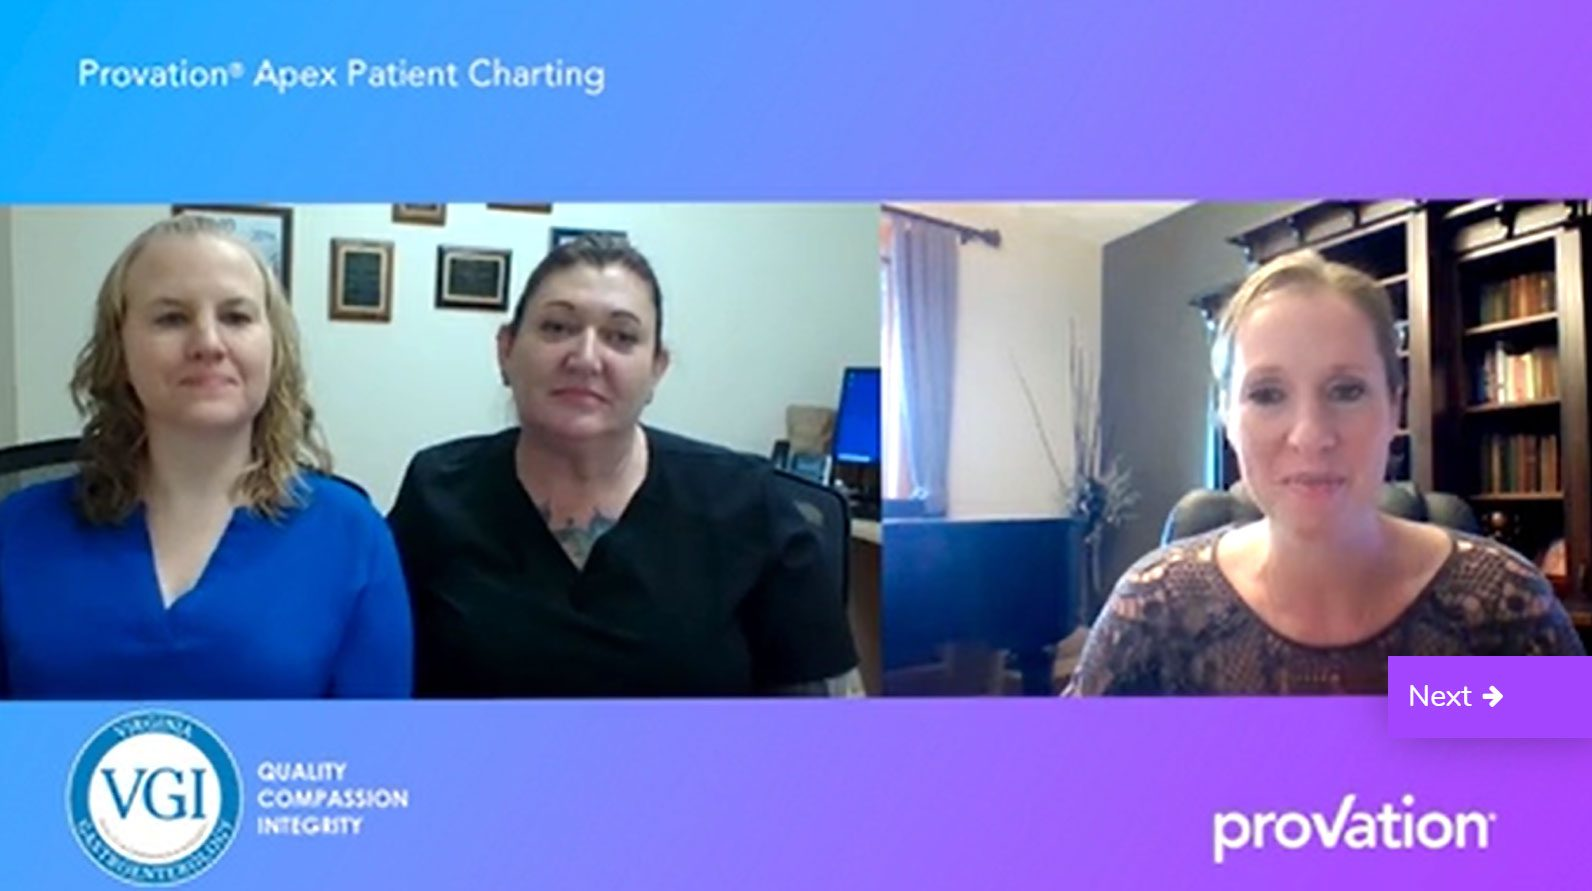 Provation® Apex Patient Charting